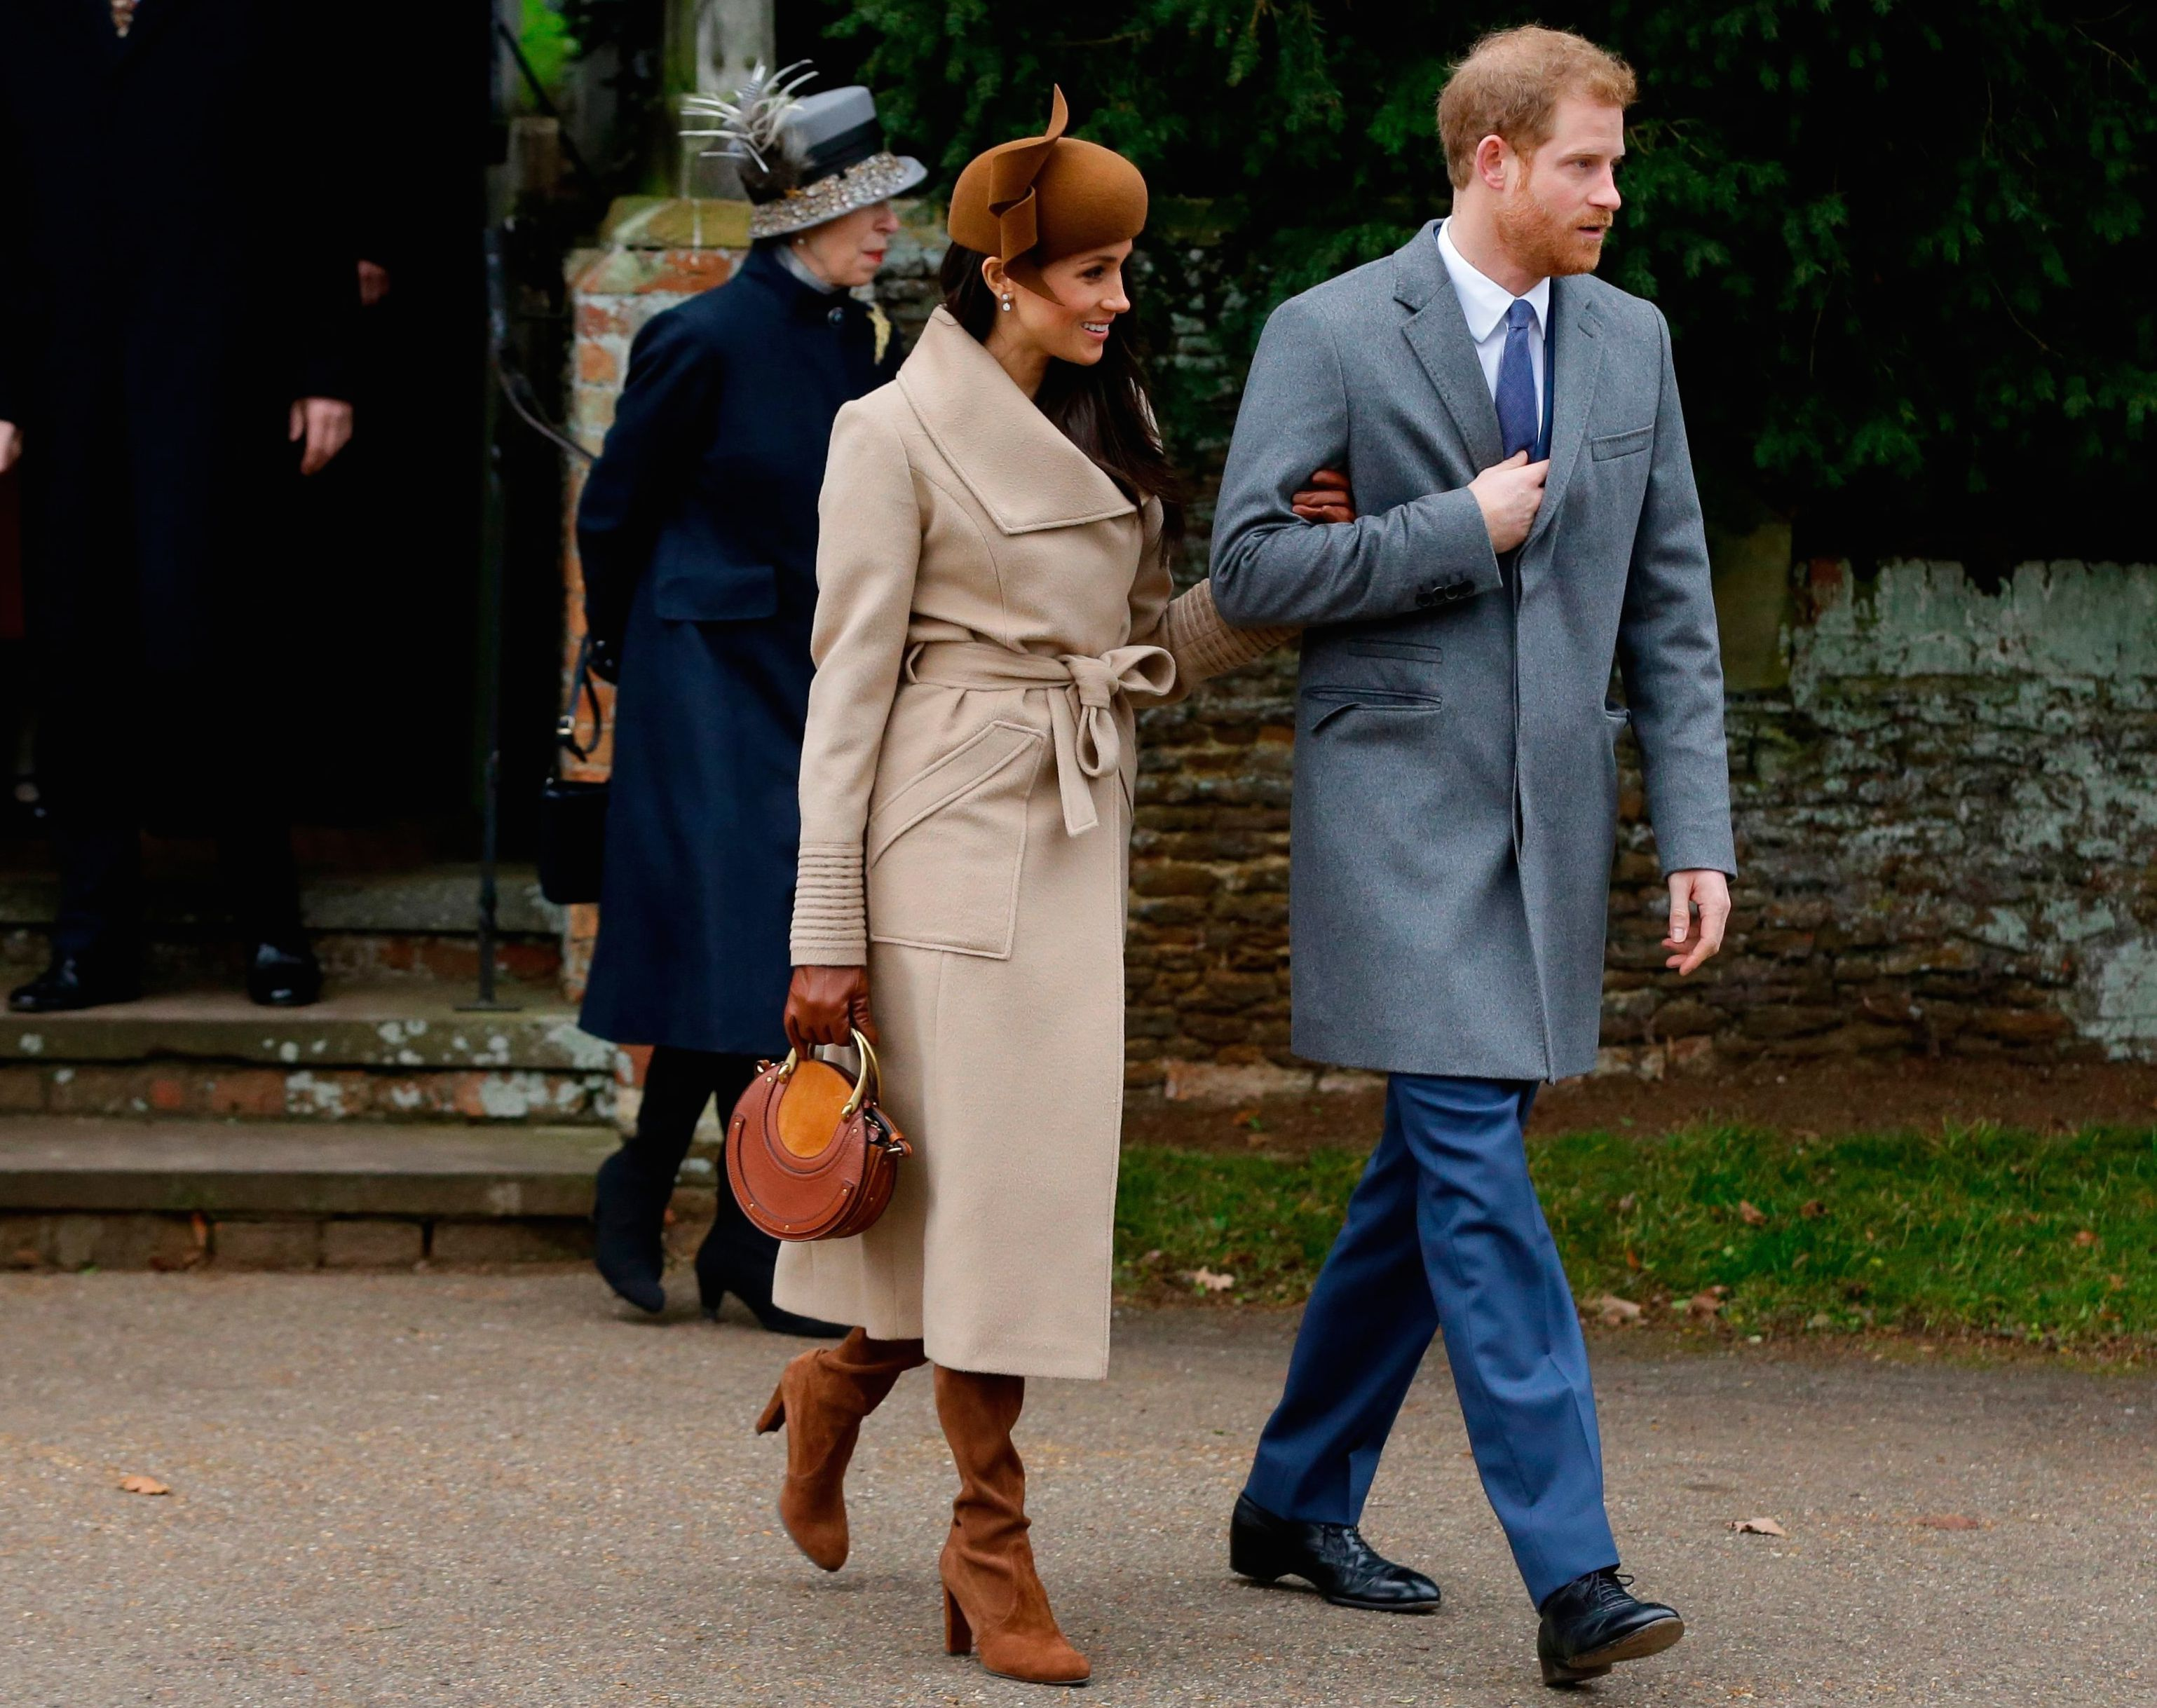 """Britain's Prince Harry and his fiancee Meghan Markle leave the traditional Christmas Day church service, at St. Mary Magdalene Church in Sandringham, England. As Prince Harry's future bride left a church service on the grounds of Queen Elizabeth II's private country estate, designer Bojana Sentaler recognized her coat """"I was looking for the ribbed sleeves, hoping it was a Sentaler coat,'' said the designer, who met Markle when she was a mere TV star. The Meghan magic was almost instantaneous; Markle's coat sold out, as Sentaler expected, and the publicity fueled sales of other designsBritain Markle's Magic, Sandringham, United Kingdom - 25 Dec 2017"""